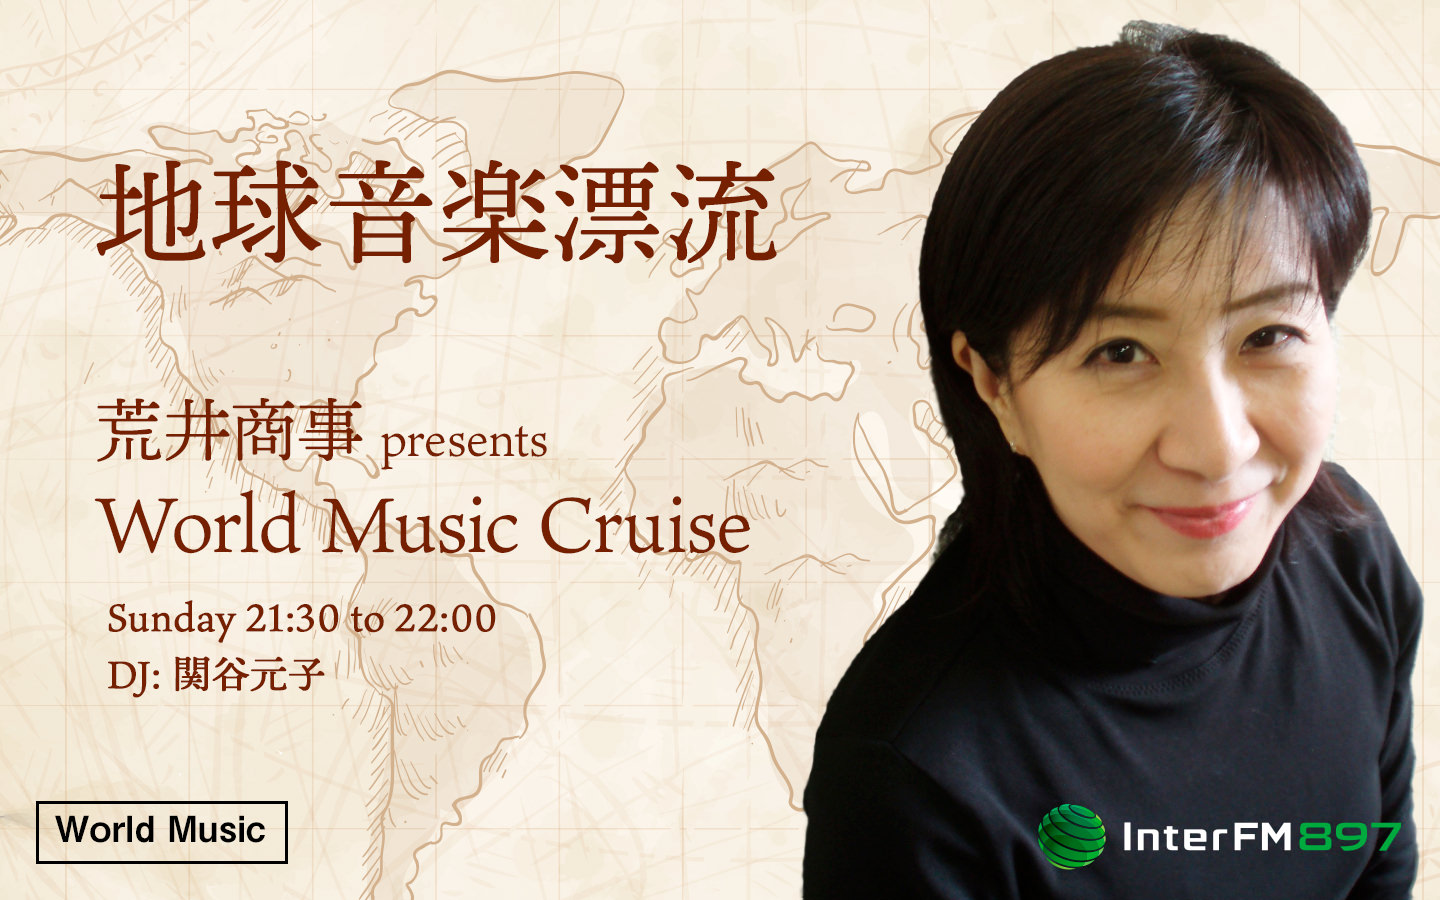 荒井商事 presents World Music Cruise